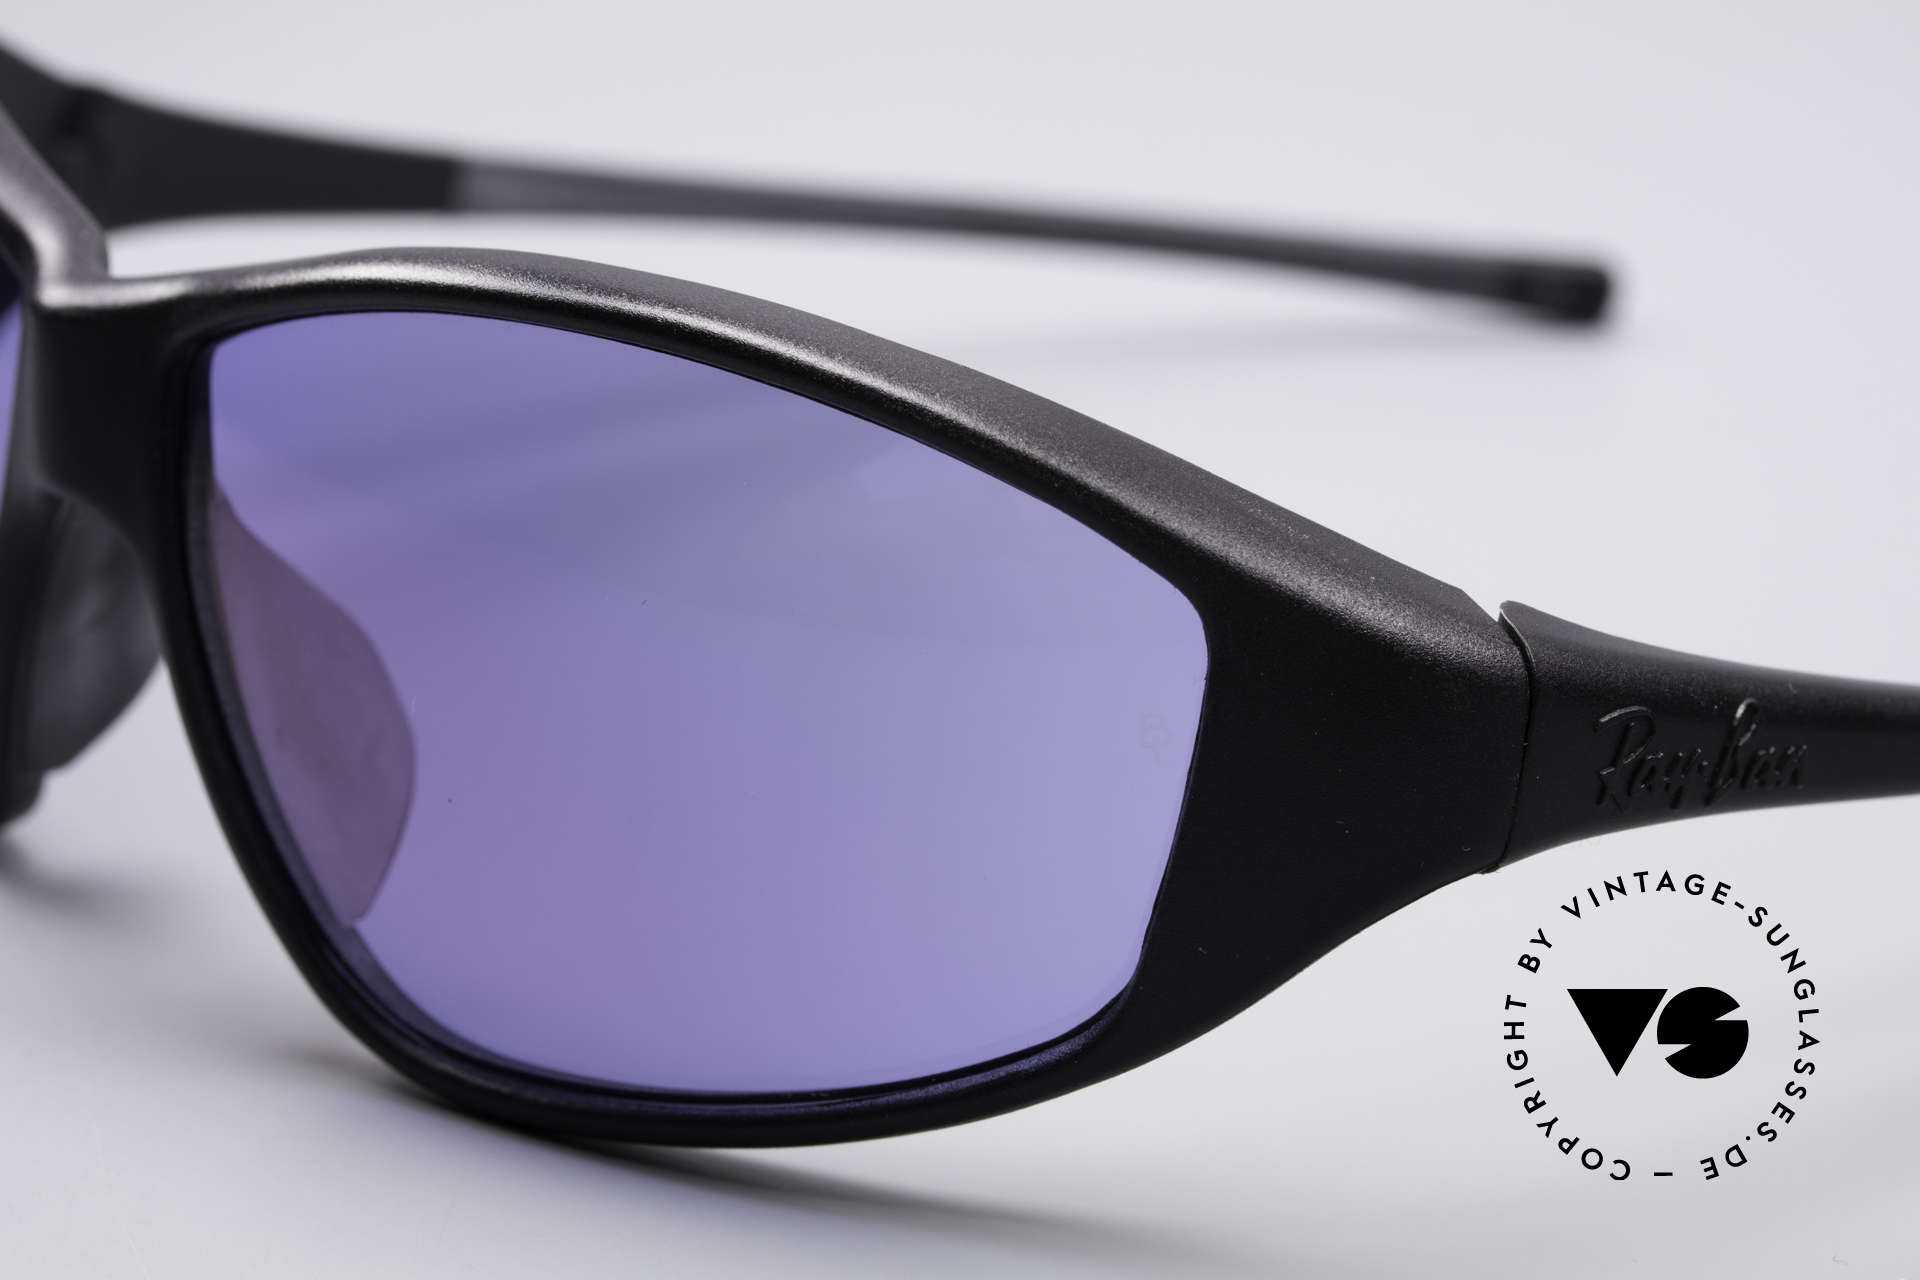 Ray Ban B0005 Callaway Vintage Golf Sunglasses, one of the last models which B&L ever made (true rarity), Made for Men